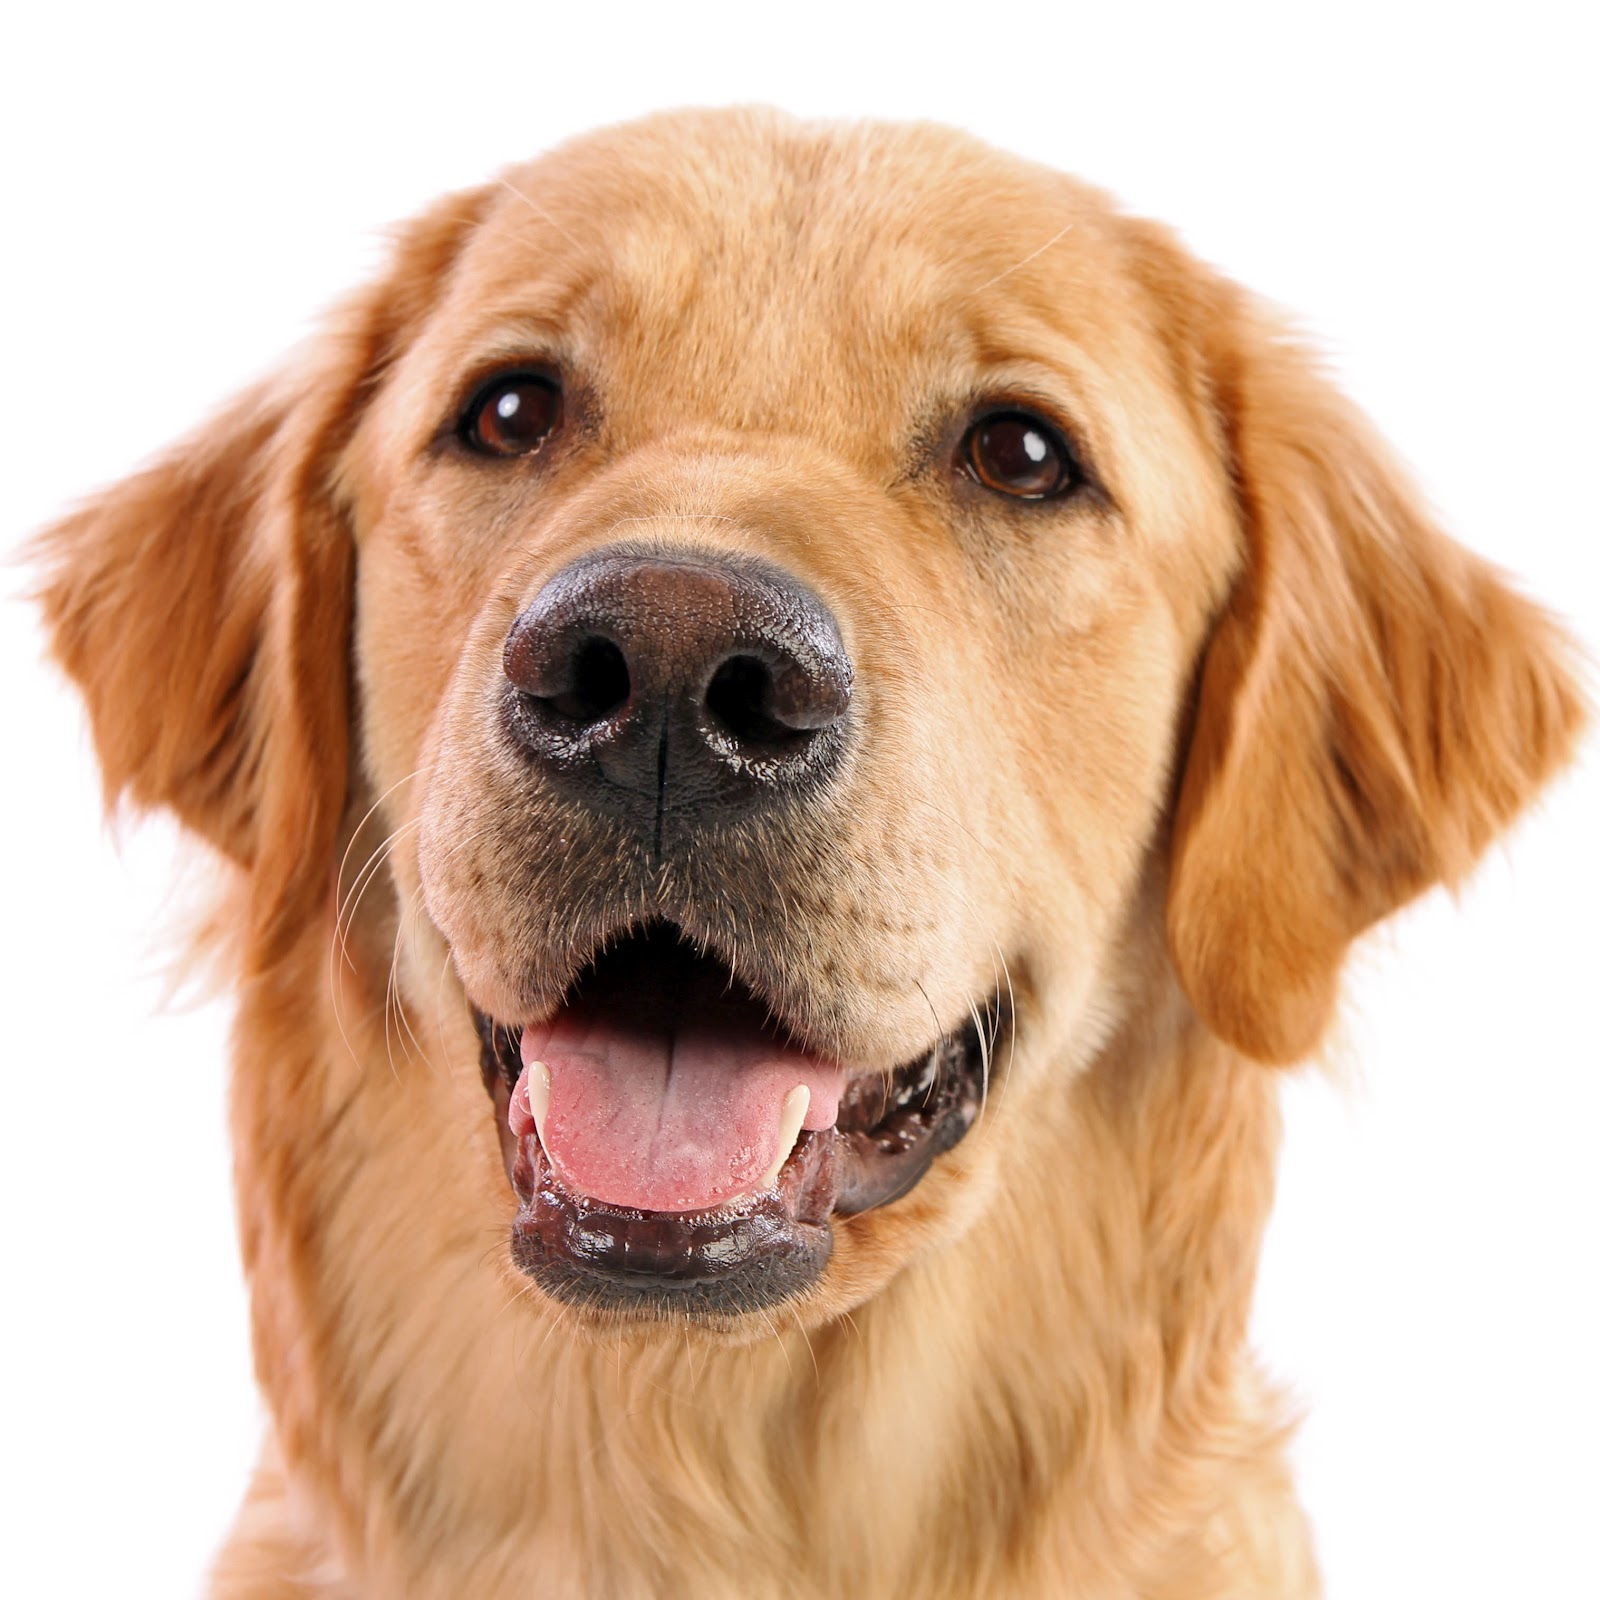 Related dog png images